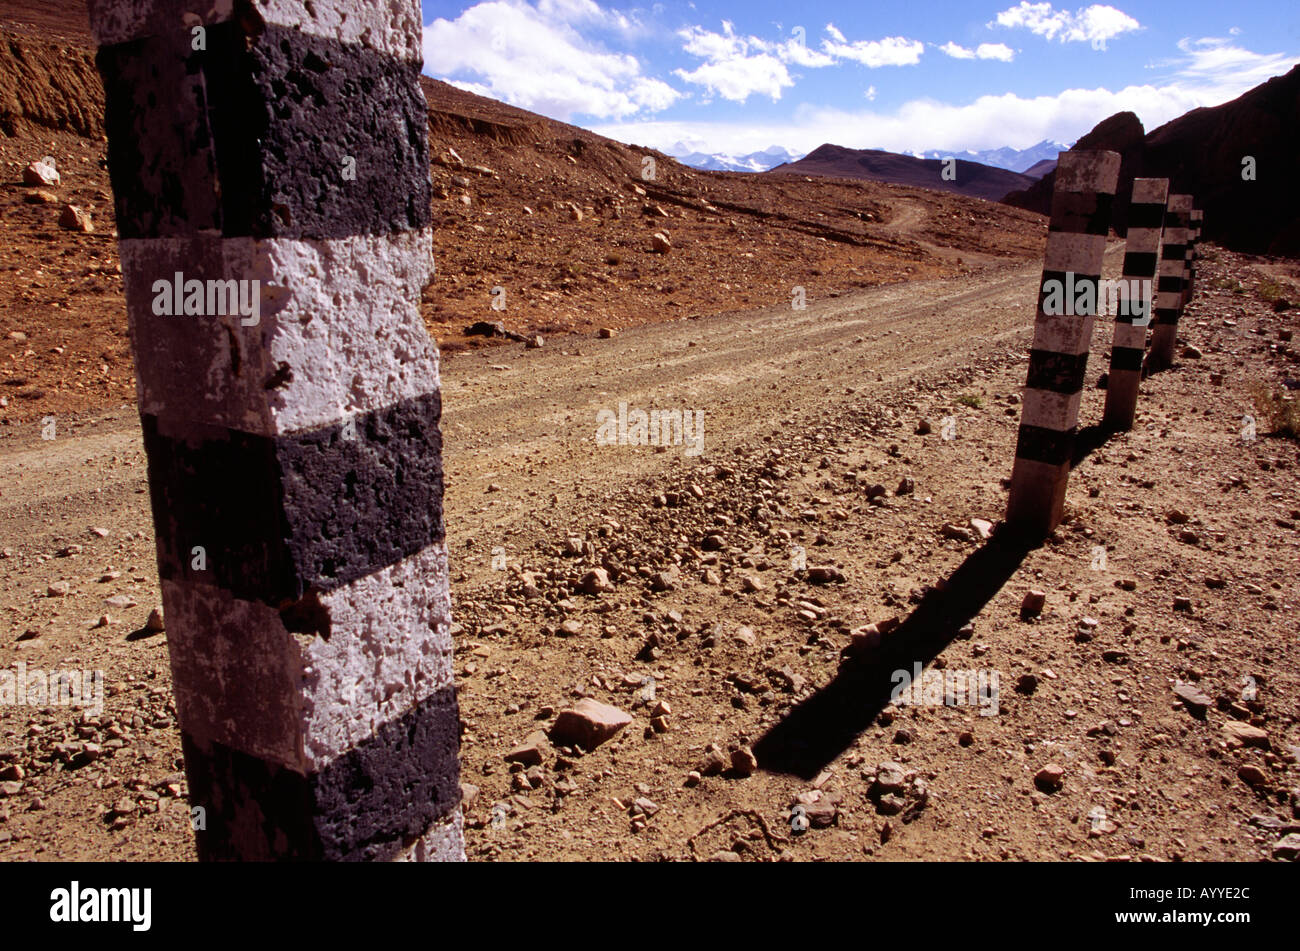 Striped painted road side contrite posts on a dusty gravel offroad highway in the Himalayas Tibet China Asia - Stock Image